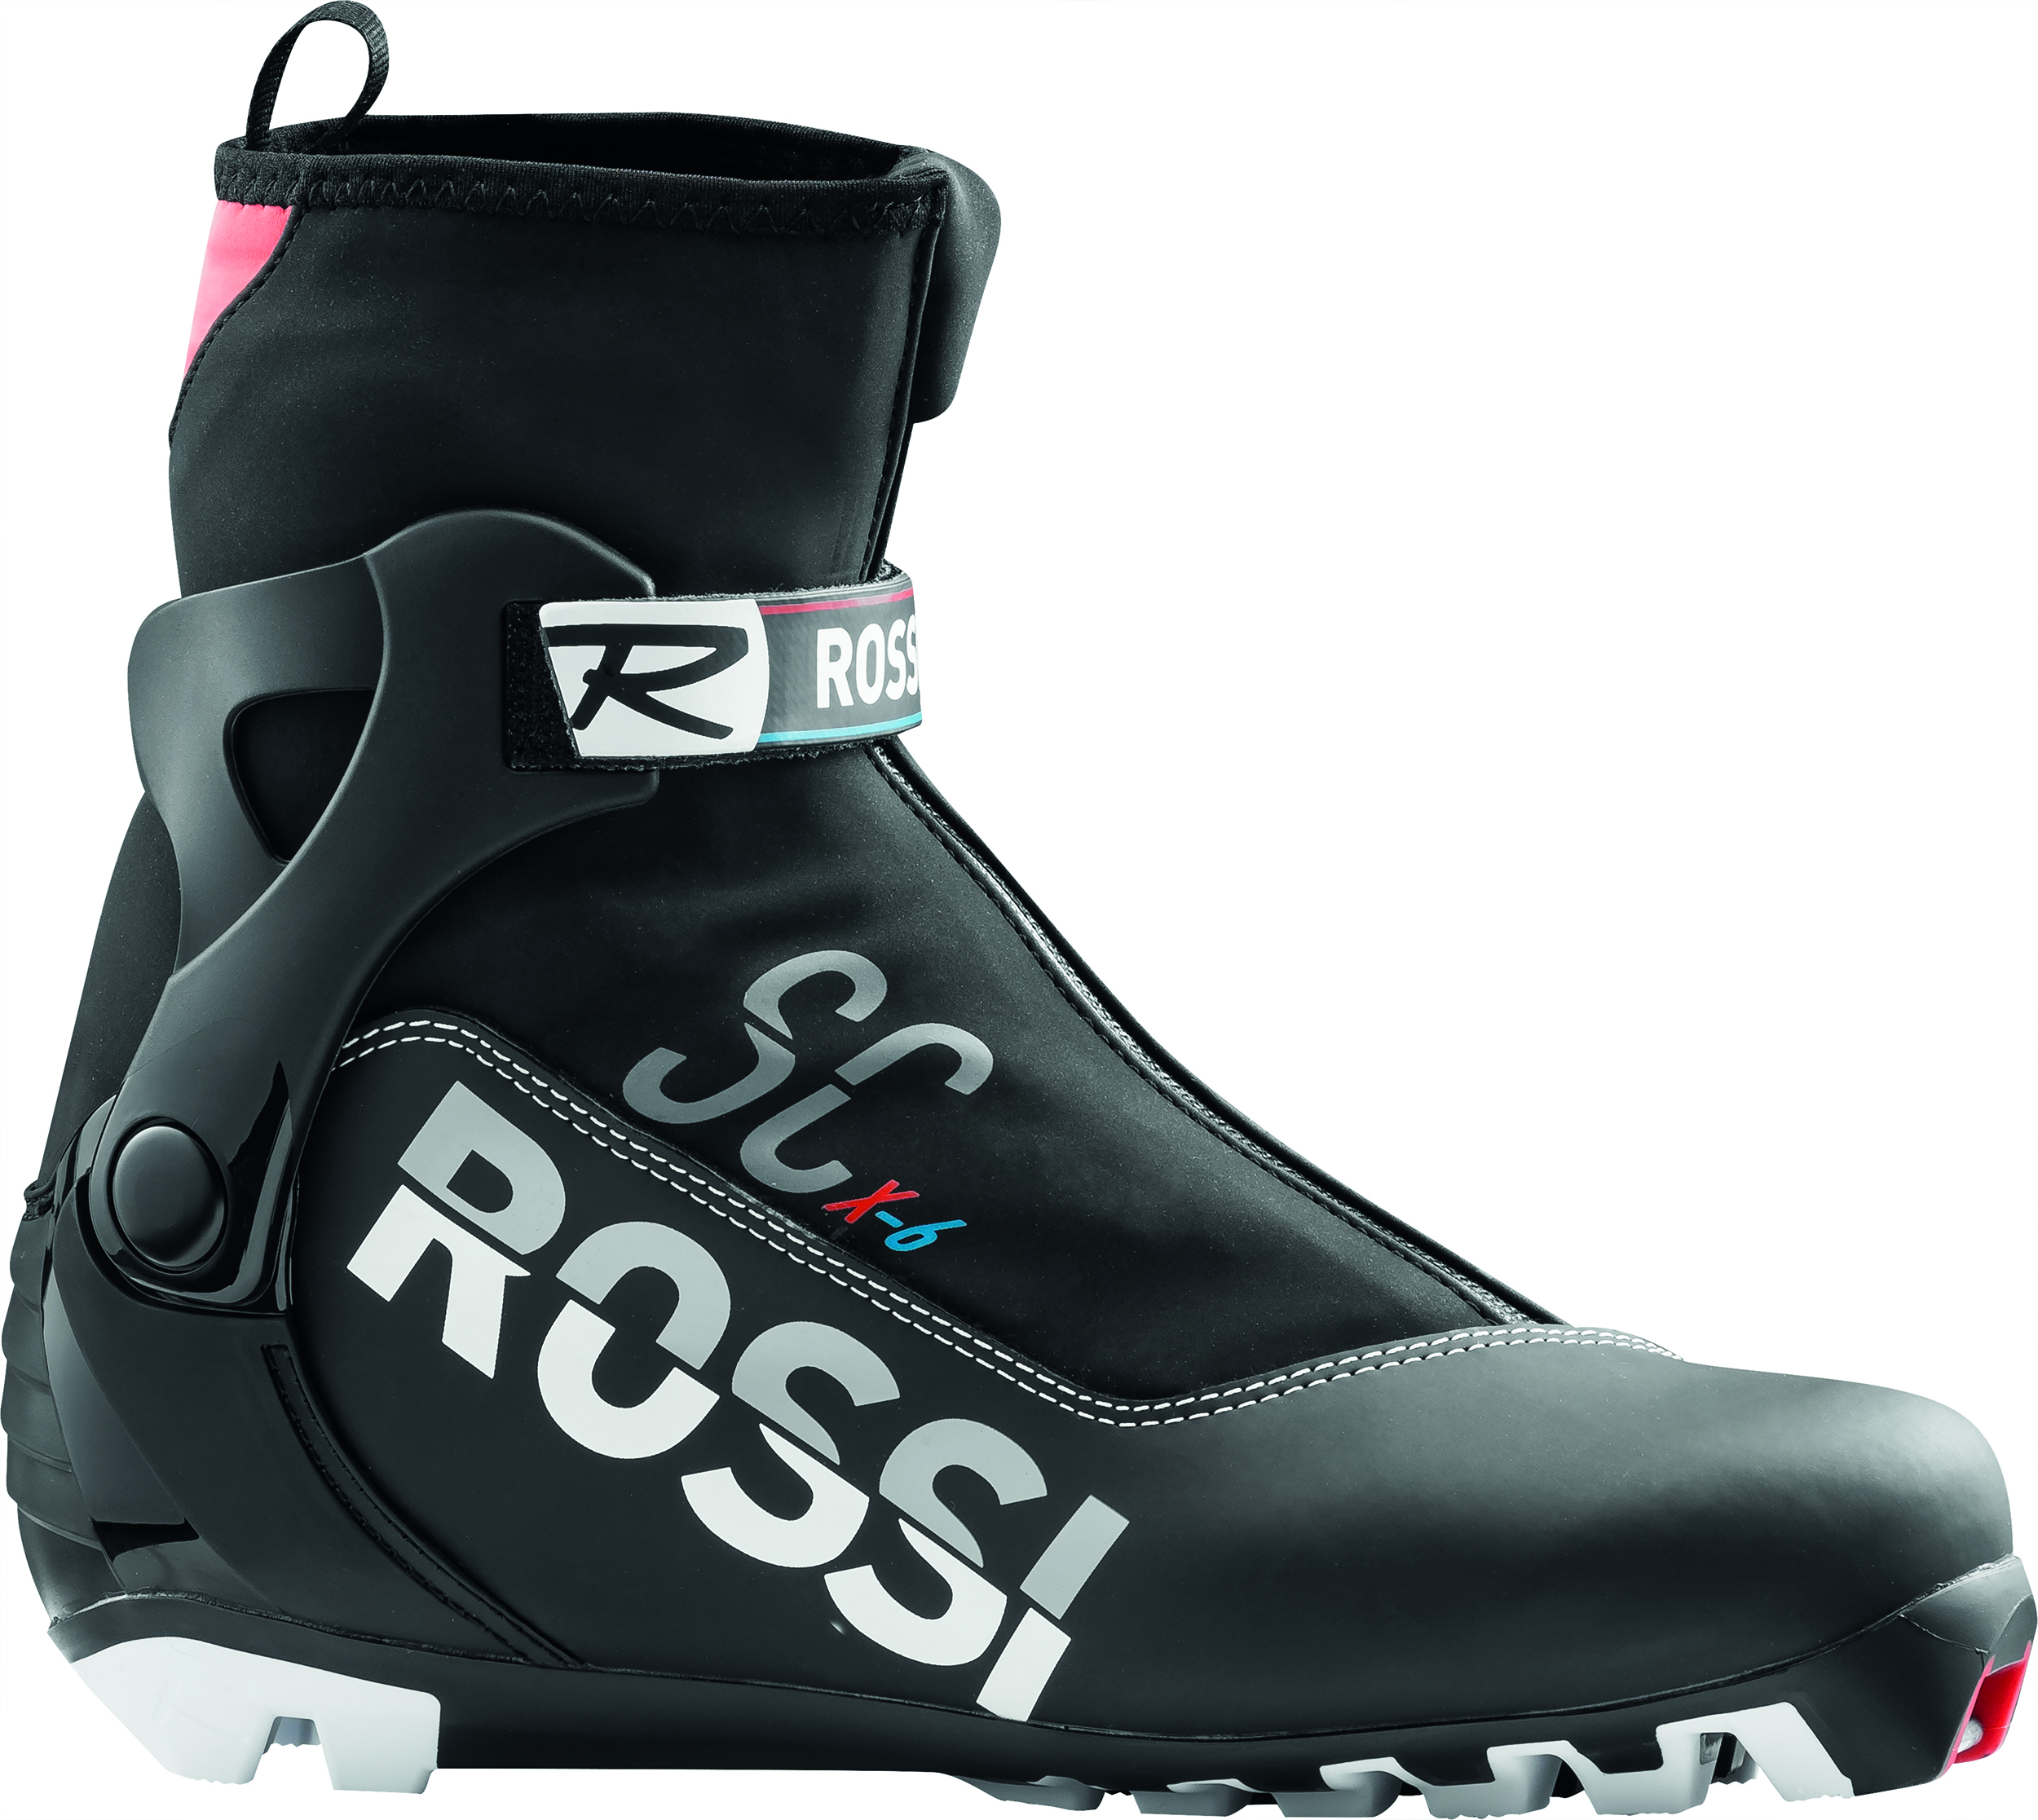 212f9a93f1 Cross country ski boots